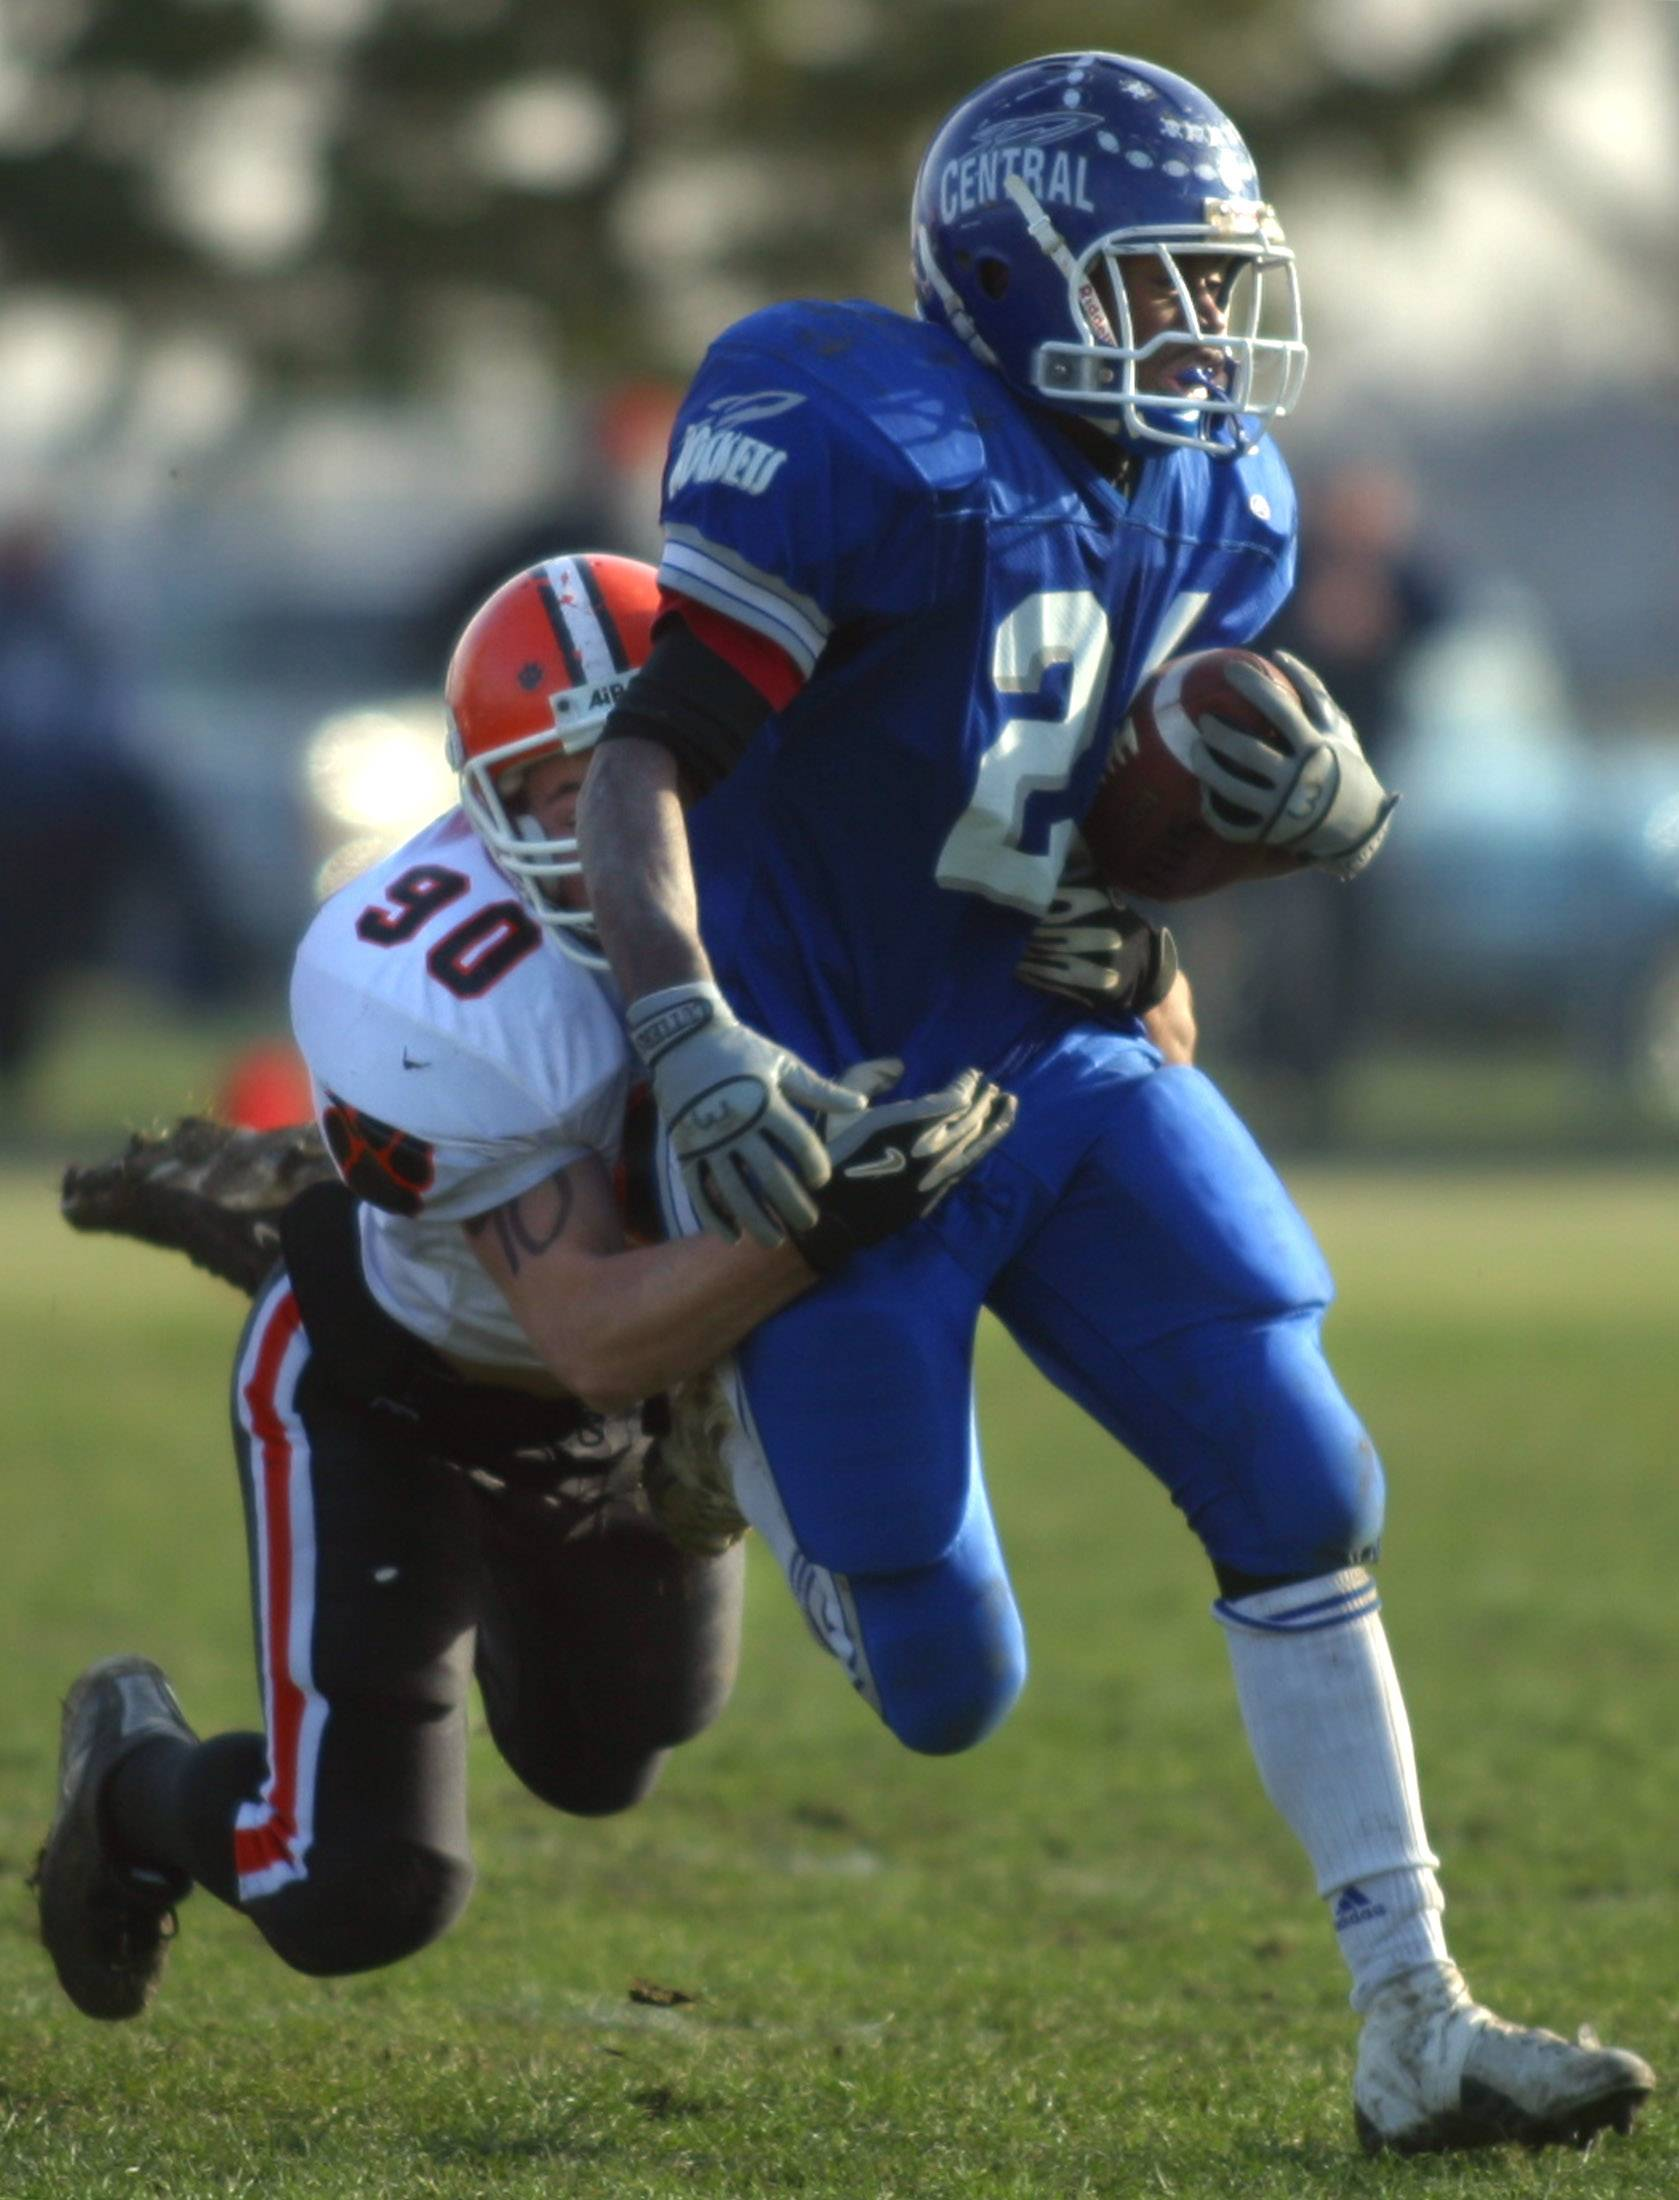 Burlington Central graduate Chris Wesson picks up yardage against Byron during a 2003 playoff team. That Rockets' team, which advanced to the Class 4A state quarterfinals and finished 11-1, will be inducted into the school's Athletic Hall of Fame on April 13.